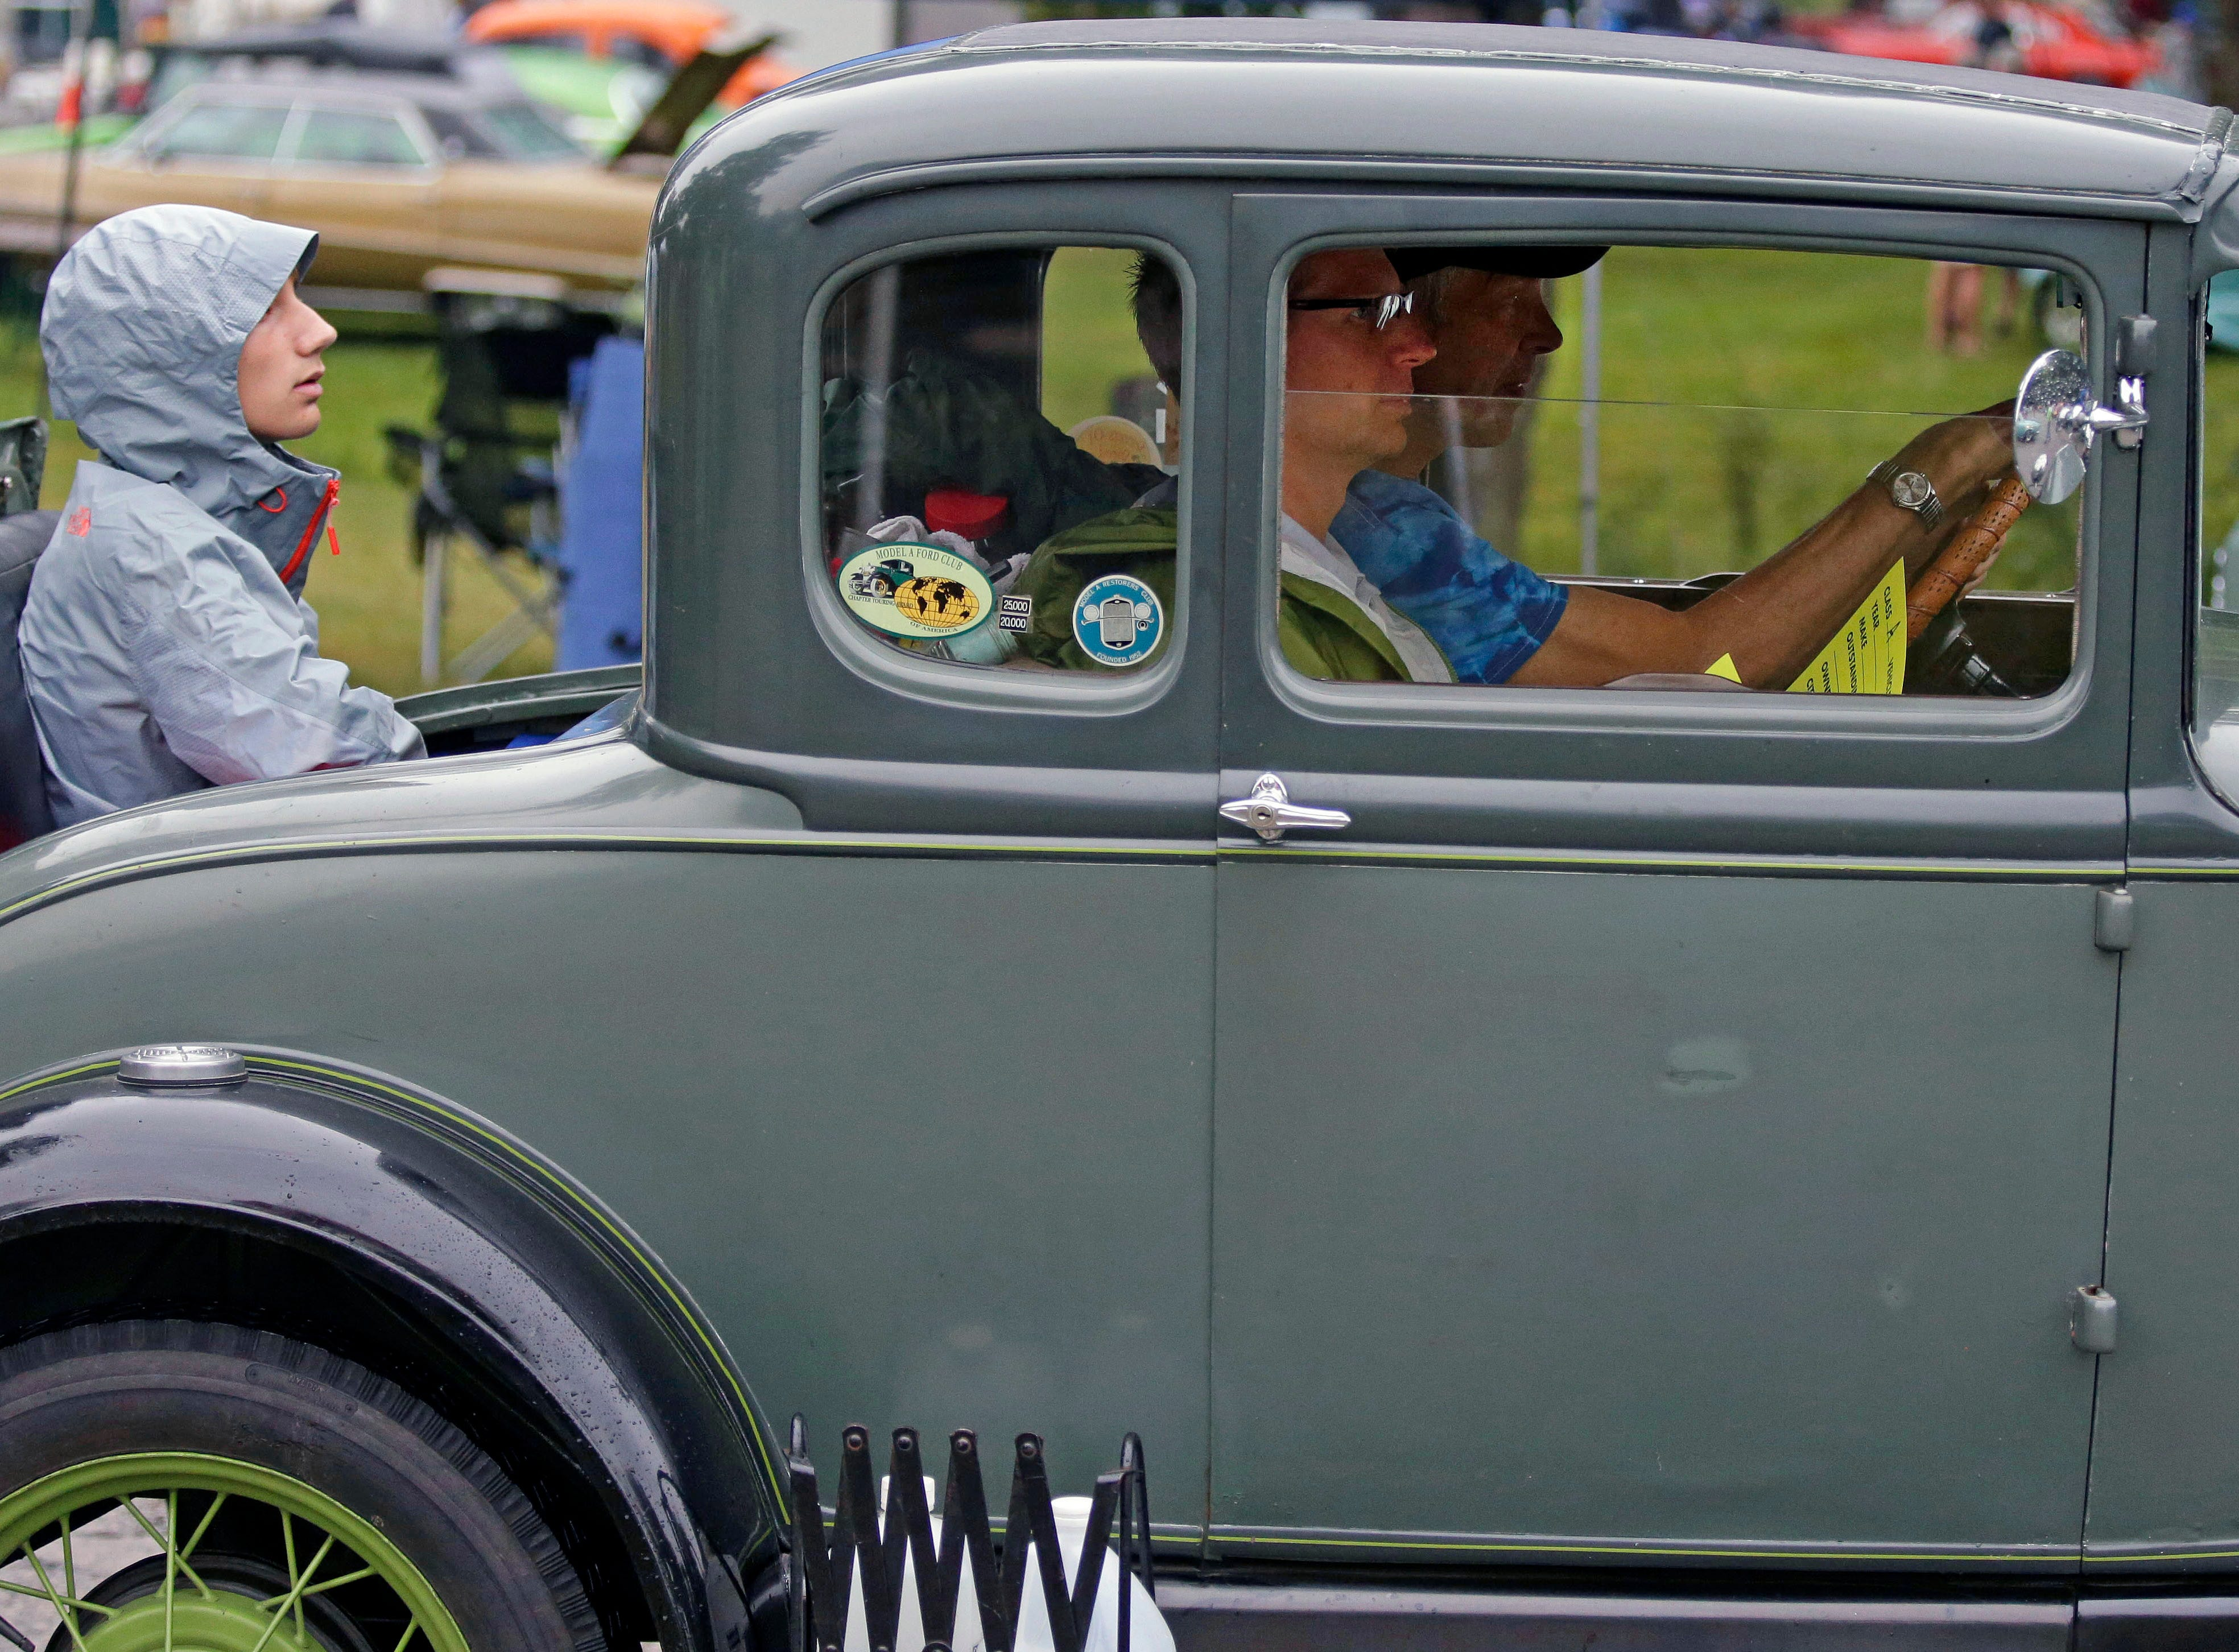 Dick Ziegert drives a Model A along with passengers Andy Ziegert, front, and Zachary Ziegert in the rumble seat during the Appleton Old Car Show and Swap Meet Sunday, July 22, 2018, at Pierce Park in Appleton, Wis.